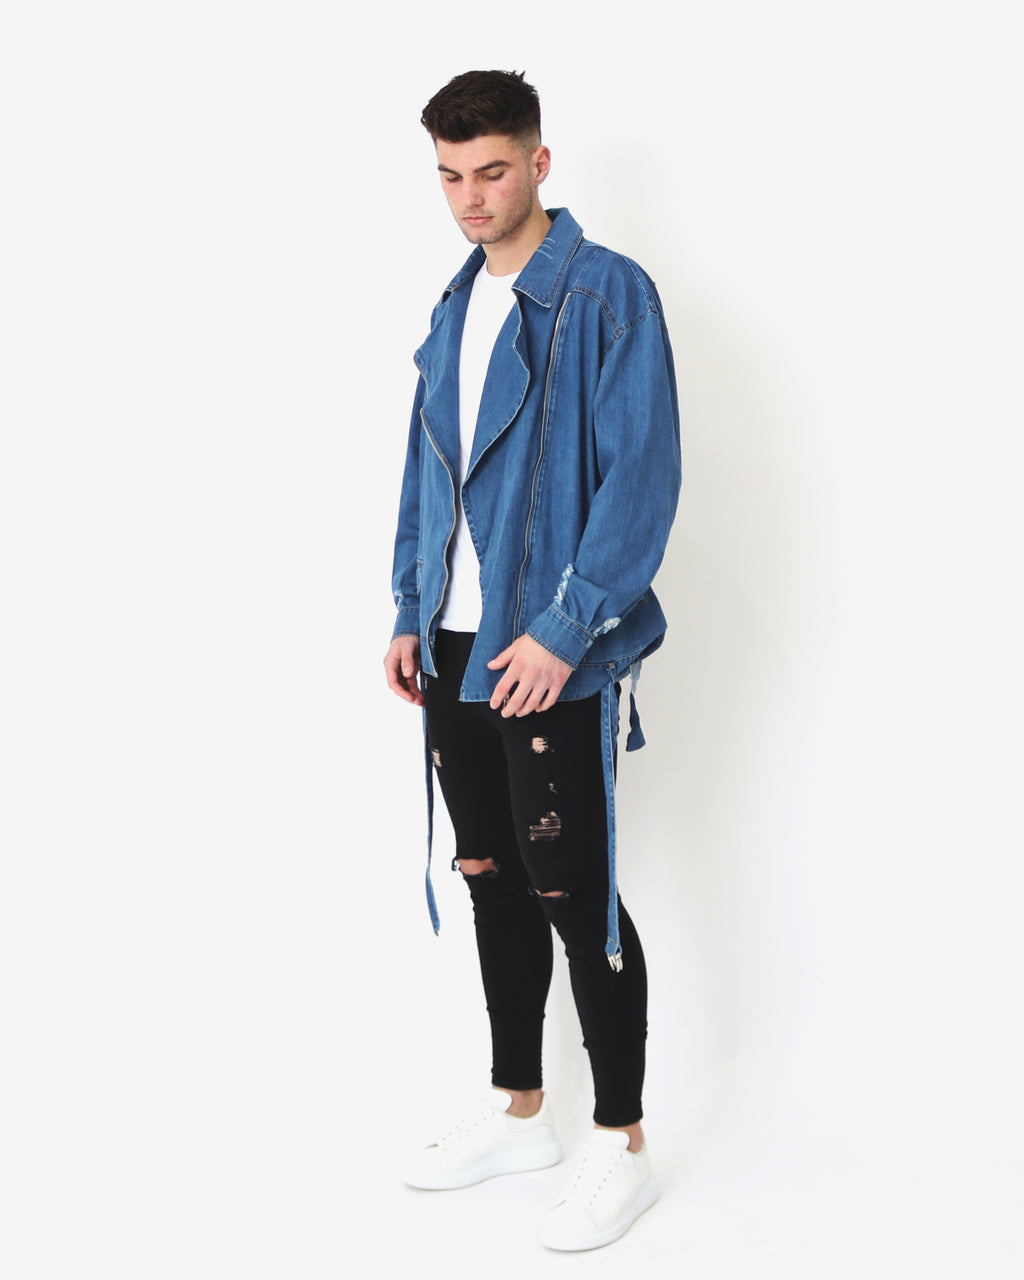 Headliner Denim Jacket - MULR